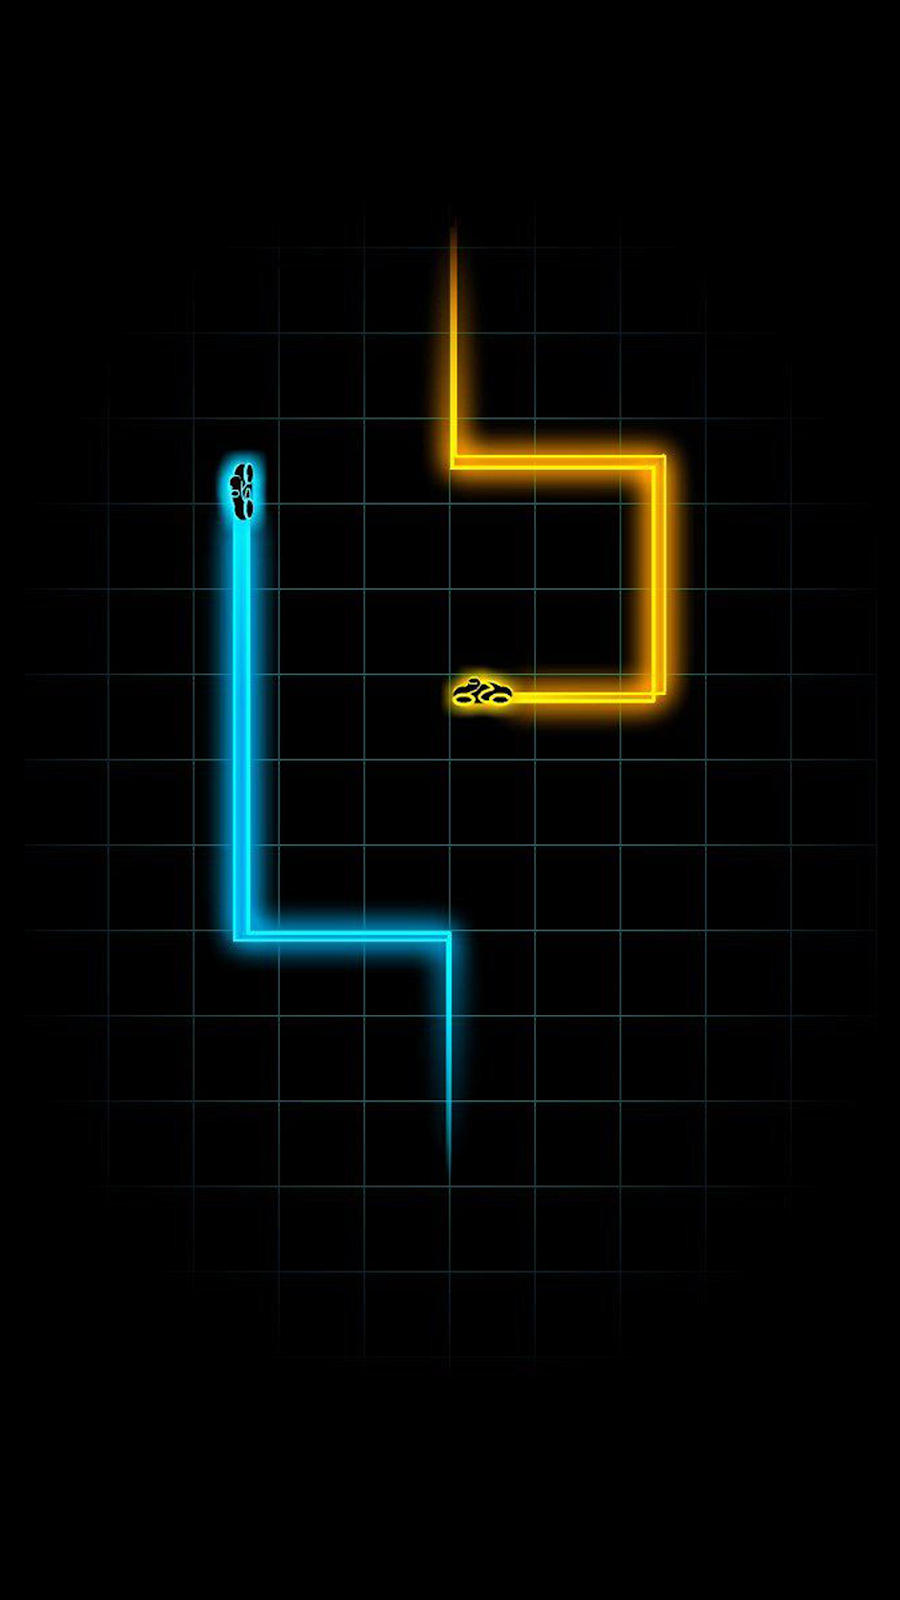 tron snake retro black background